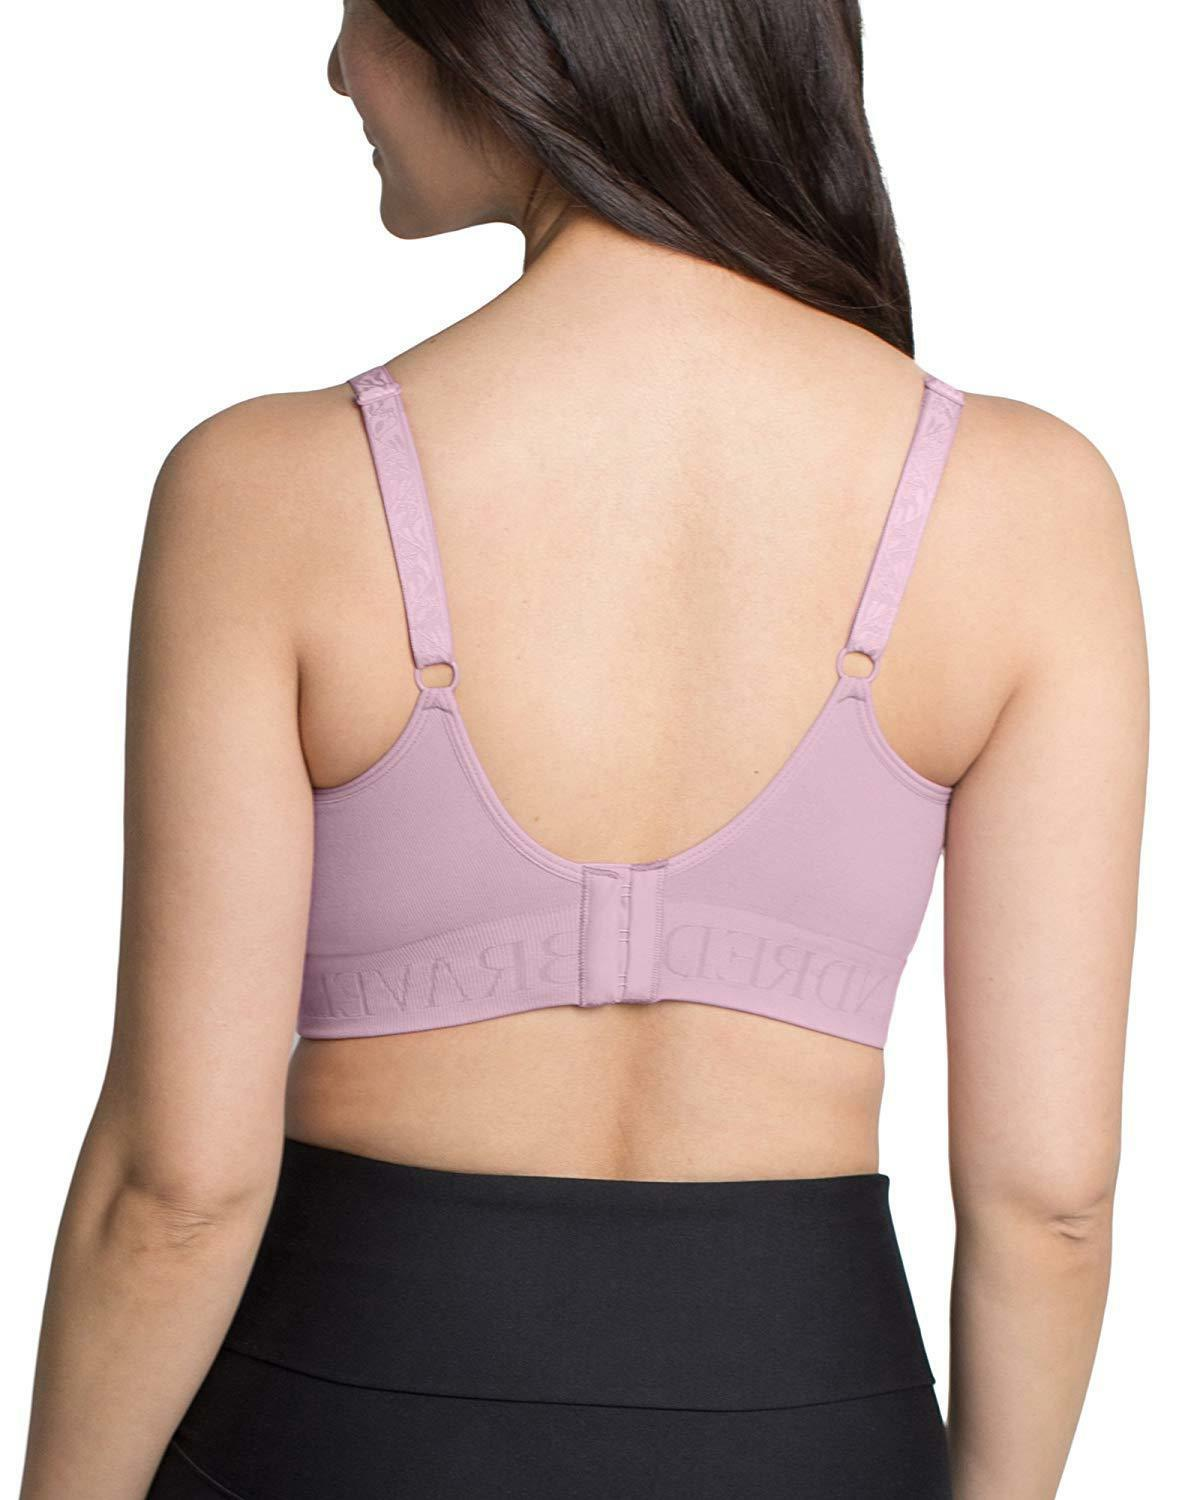 464906d33 Kindred Bravely Simply Nursing Breastfeeding and Maternity. Kindred Sublime  Nursing Bra and. Kindred Nursing and. Kindred Nursing for Breastfeeding and